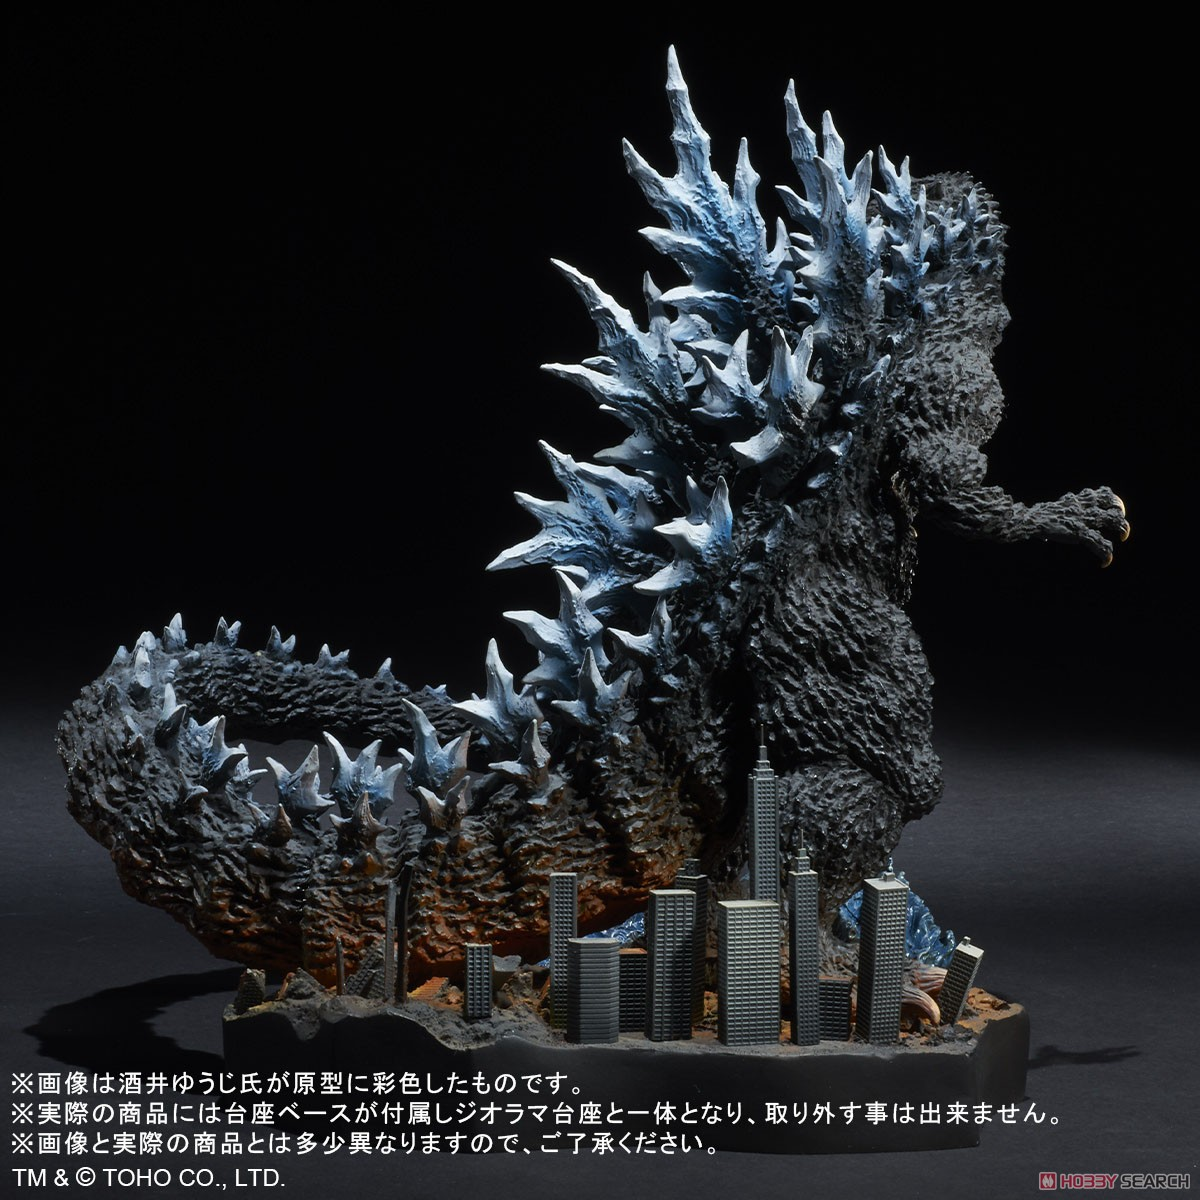 Real Master Collection Yuji Sakai Best Works Selection Godzilla (2004) Poster Version `Farewell, Godzilla.` (Completed) Item picture6